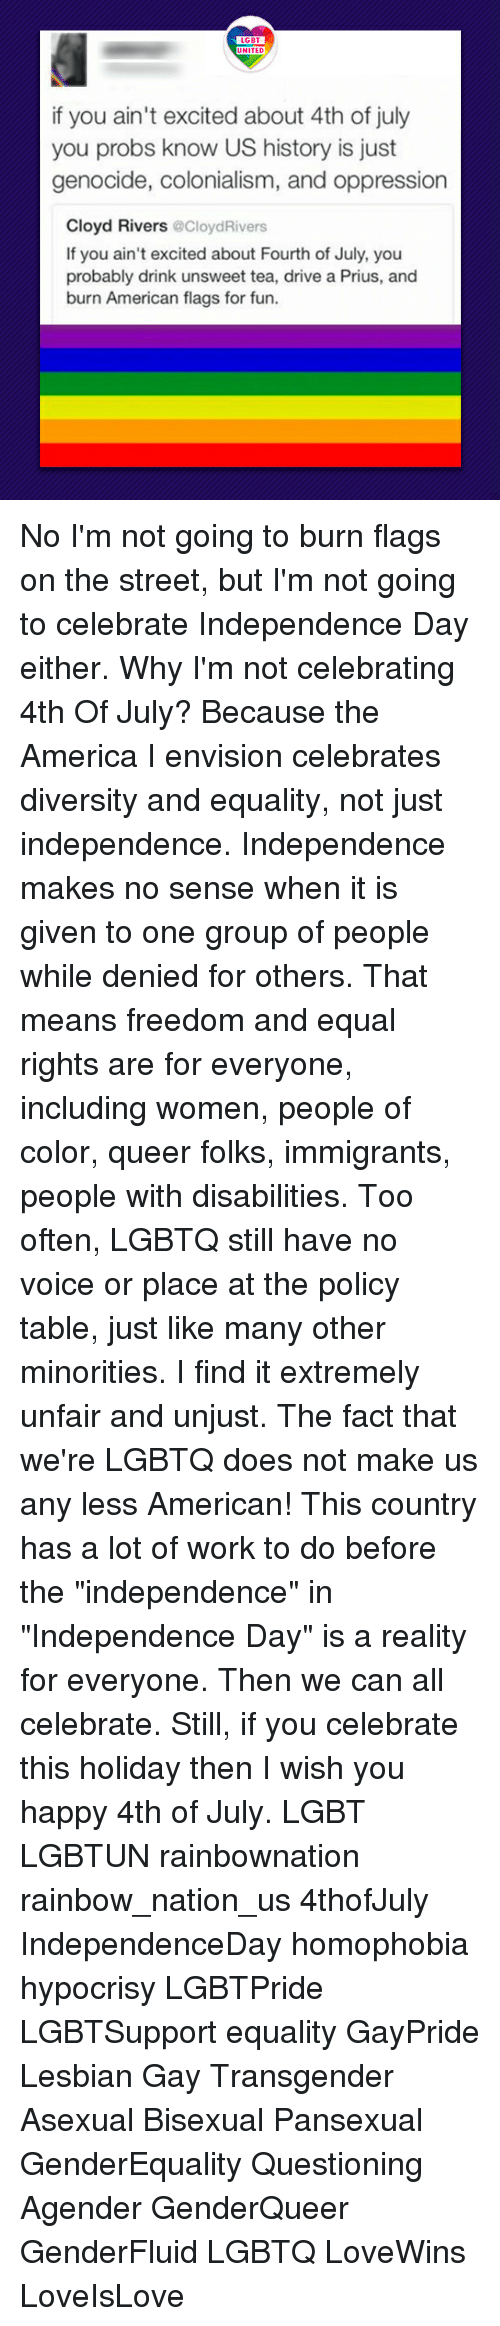 """America, Independence Day, and Lgbt: LGBT  if you ain't excited about 4th of july  you probs know US history is just  genocide, colonialism, and oppression  Cloyd Rivers @CloydRivers  If you ain't excited about Fourth of July, you  probably drink unsweet tea, drive a Prius, and  burn American flags for fun. No I'm not going to burn flags on the street, but I'm not going to celebrate Independence Day either. Why I'm not celebrating 4th Of July? Because the America I envision celebrates diversity and equality, not just independence. Independence makes no sense when it is given to one group of people while denied for others. That means freedom and equal rights are for everyone, including women, people of color, queer folks, immigrants, people with disabilities. Too often, LGBTQ still have no voice or place at the policy table, just like many other minorities. I find it extremely unfair and unjust. The fact that we're LGBTQ does not make us any less American! This country has a lot of work to do before the """"independence"""" in """"Independence Day"""" is a reality for everyone. Then we can all celebrate. Still, if you celebrate this holiday then I wish you happy 4th of July. LGBT LGBTUN rainbownation rainbow_nation_us 4thofJuly IndependenceDay homophobia hypocrisy LGBTPride LGBTSupport equality GayPride Lesbian Gay Transgender Asexual Bisexual Pansexual GenderEquality Questioning Agender GenderQueer GenderFluid LGBTQ LoveWins LoveIsLove"""